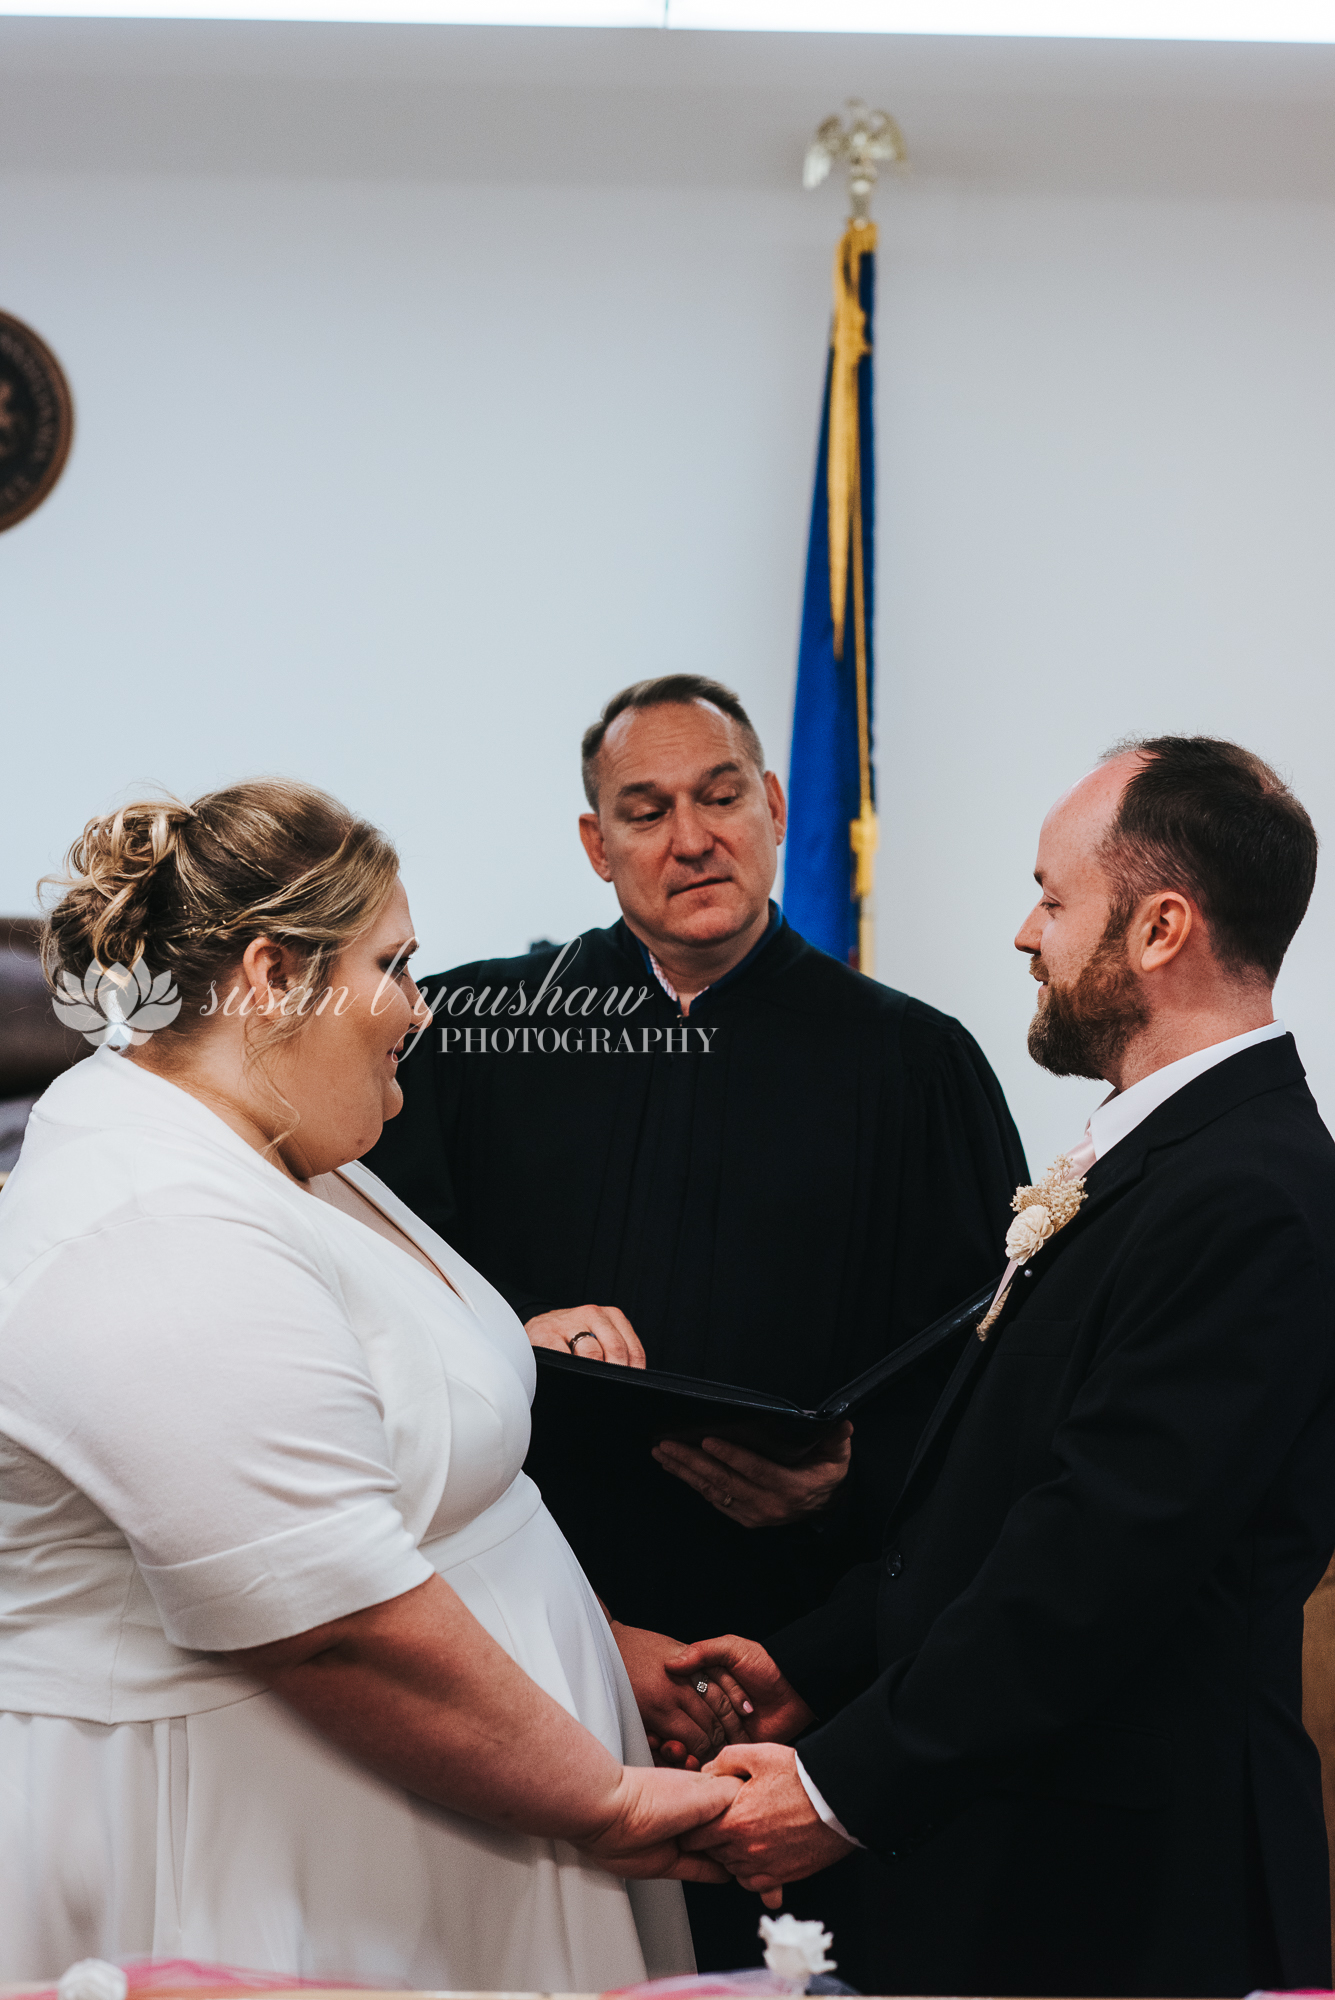 Bill and Sarah Wedding Photos 06-08-2019 SLY Photography -28.jpg